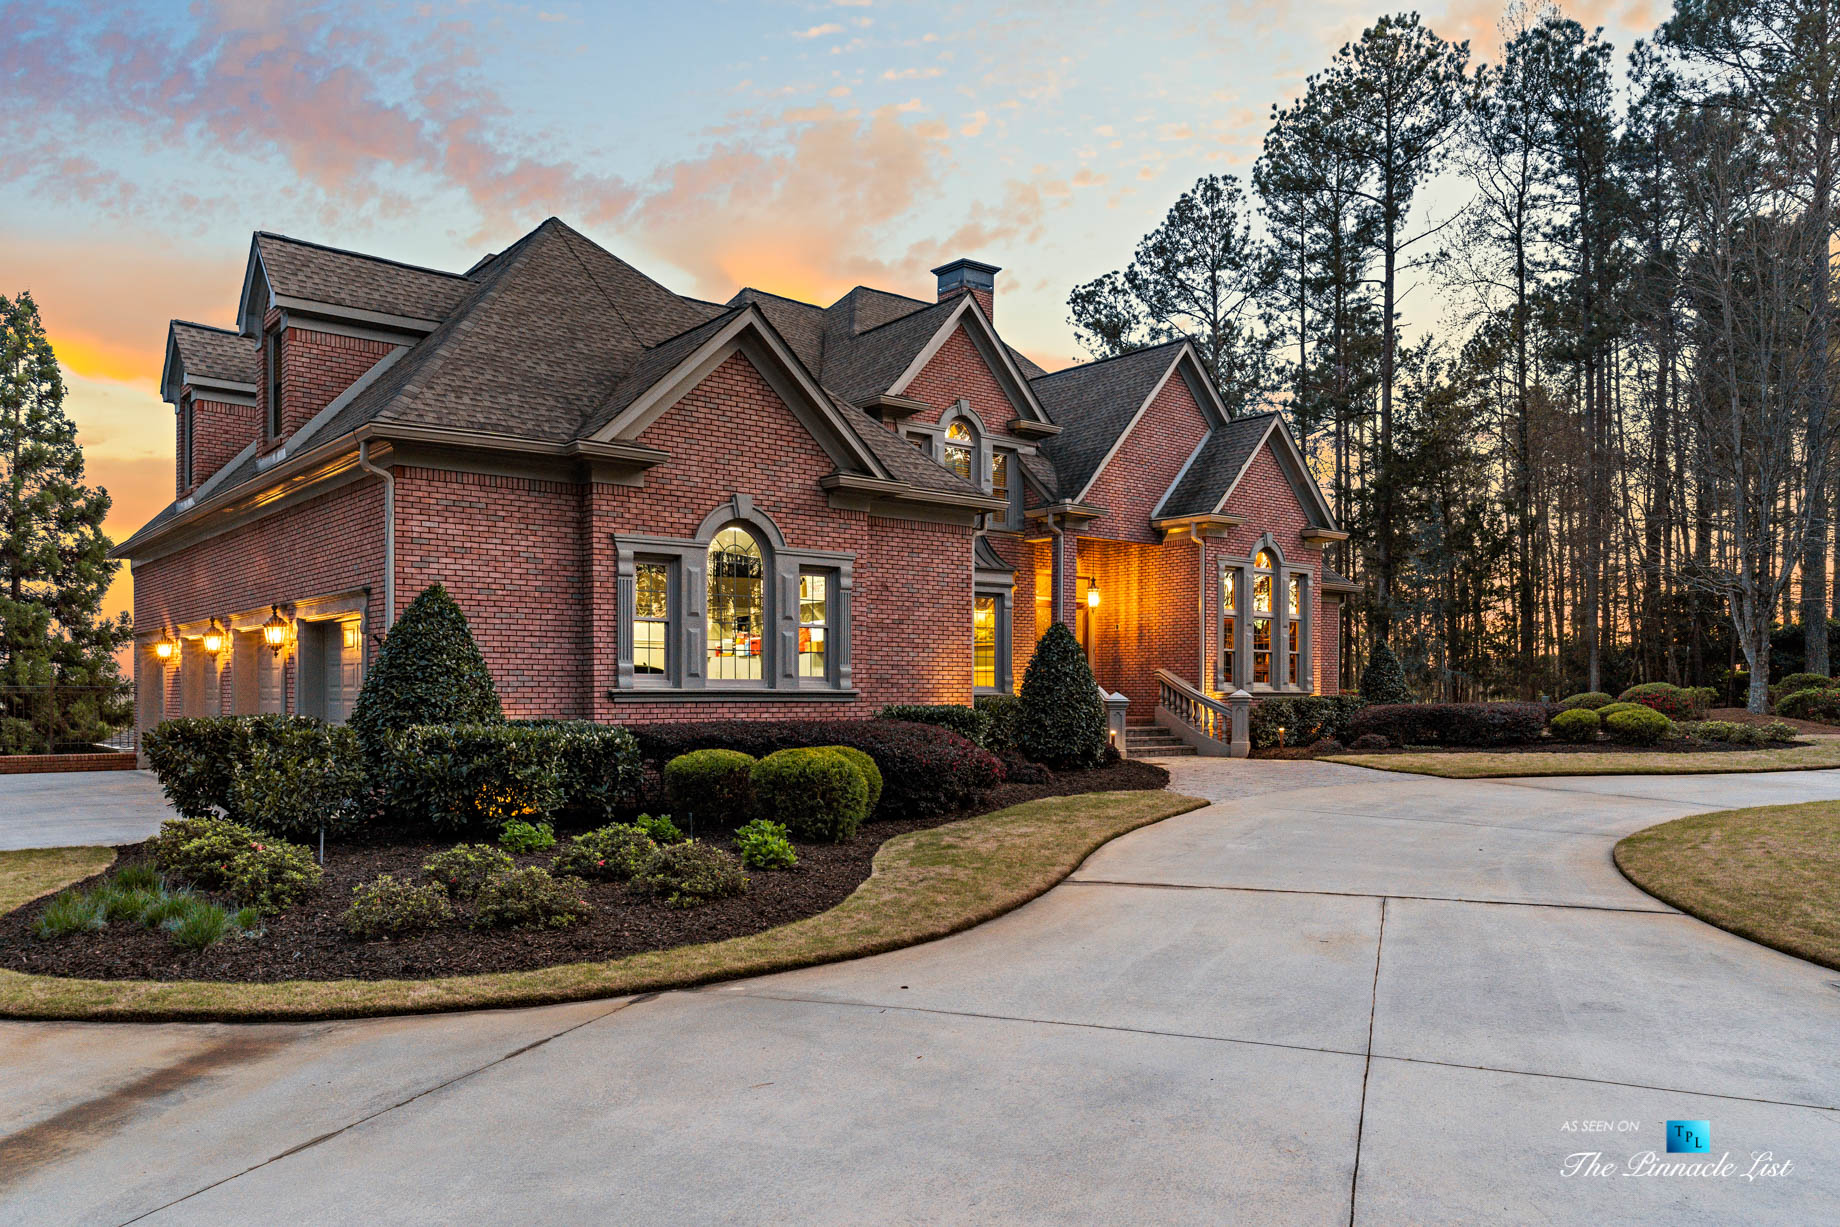 2219 Costley Mill Rd NE, Conyers, GA, USA - Sunset Front House View - Luxury Real Estate - Equestrian Country Home